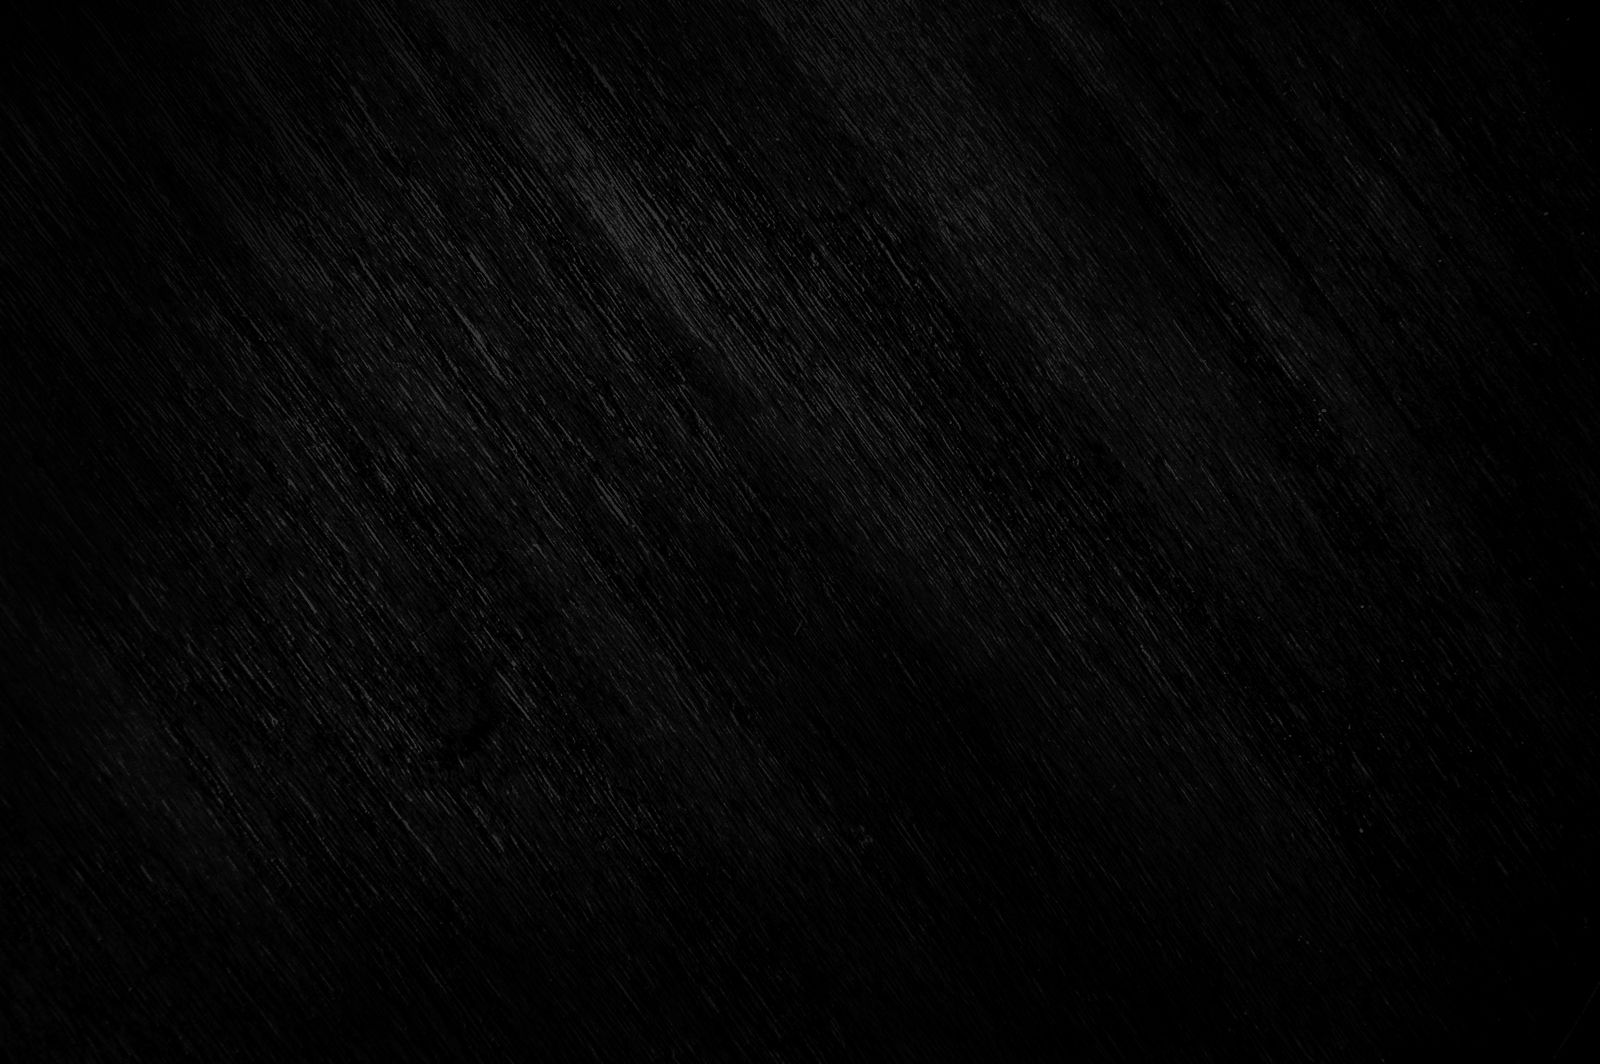 Black backgrounds photoshop dark pics photoshop 23884wall for Black and grey wallpaper designs